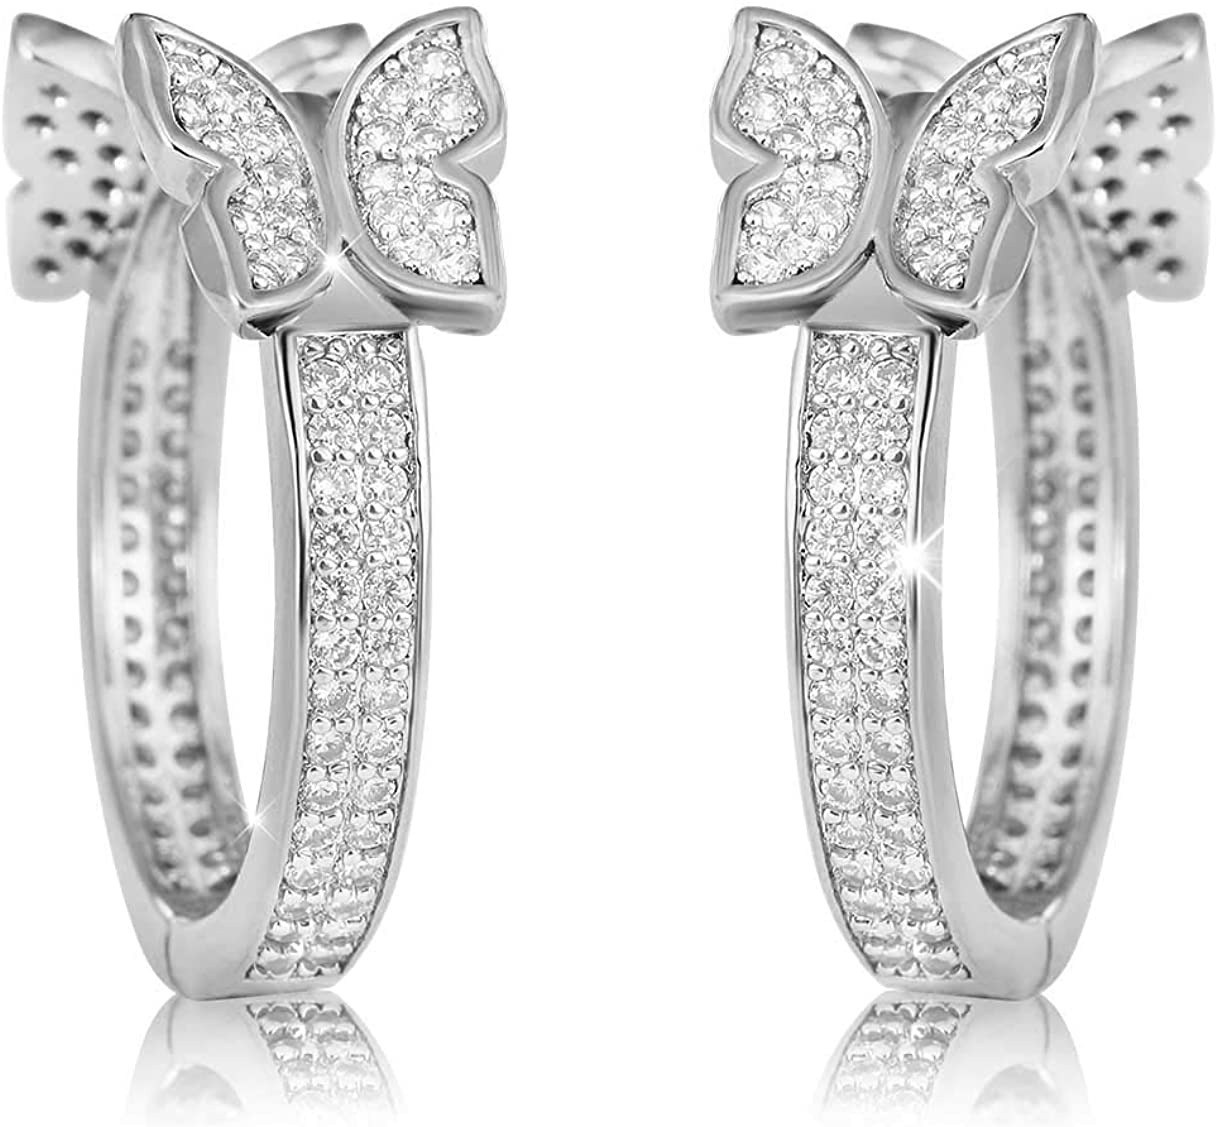 Snake Shape CZ Micro Pave Fashion Dangle Stud Earring Hoop Earrings with 925 Sterling Silver Post for Anniversary Birthday Gift